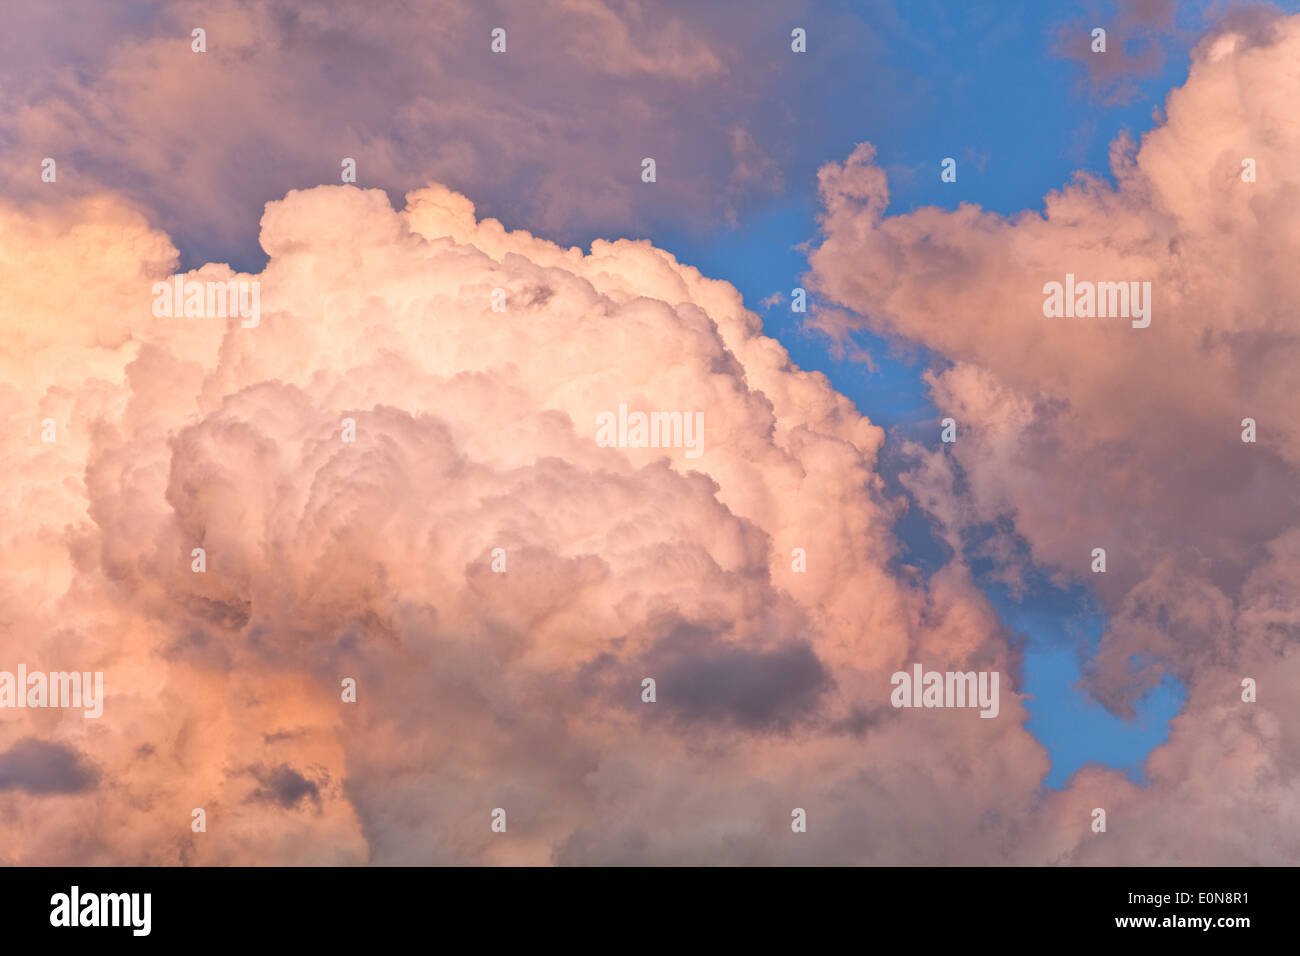 Wolken am Himmel - Clouds in the sky - Stock Image